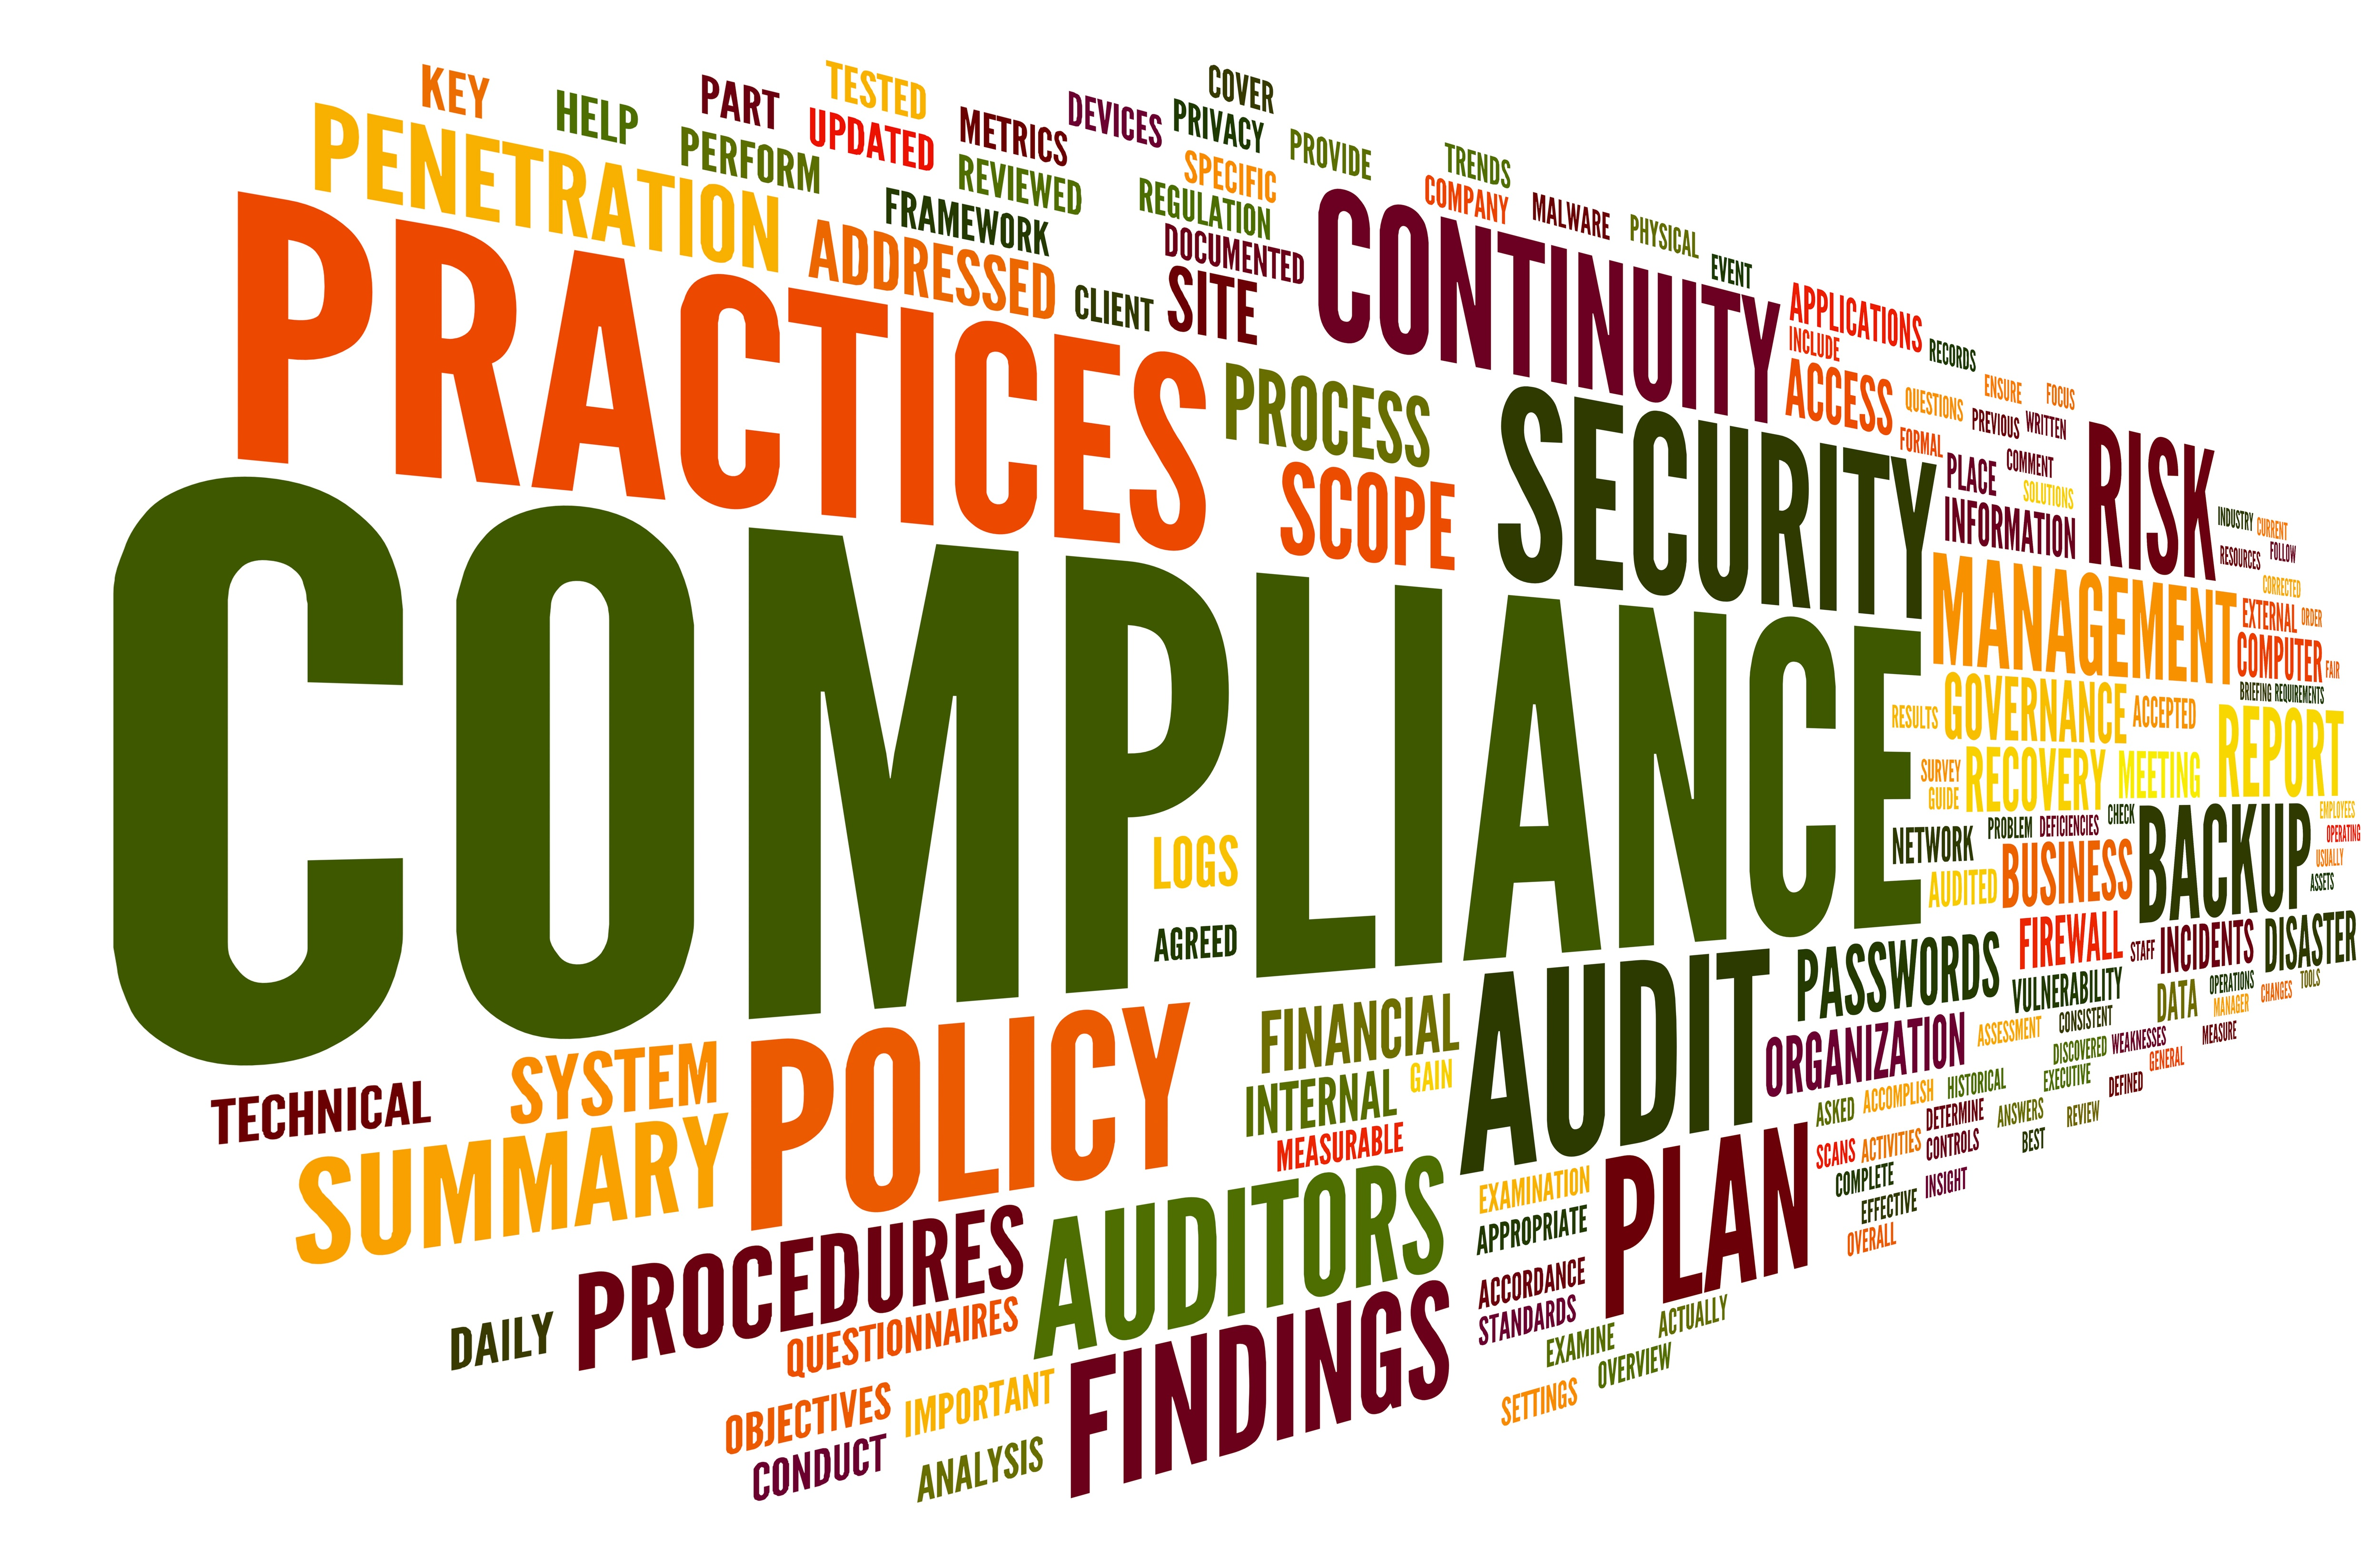 alarming-number-of-retailers-fail-security-compliance-securelink-qGfB2K-clipart.jpg